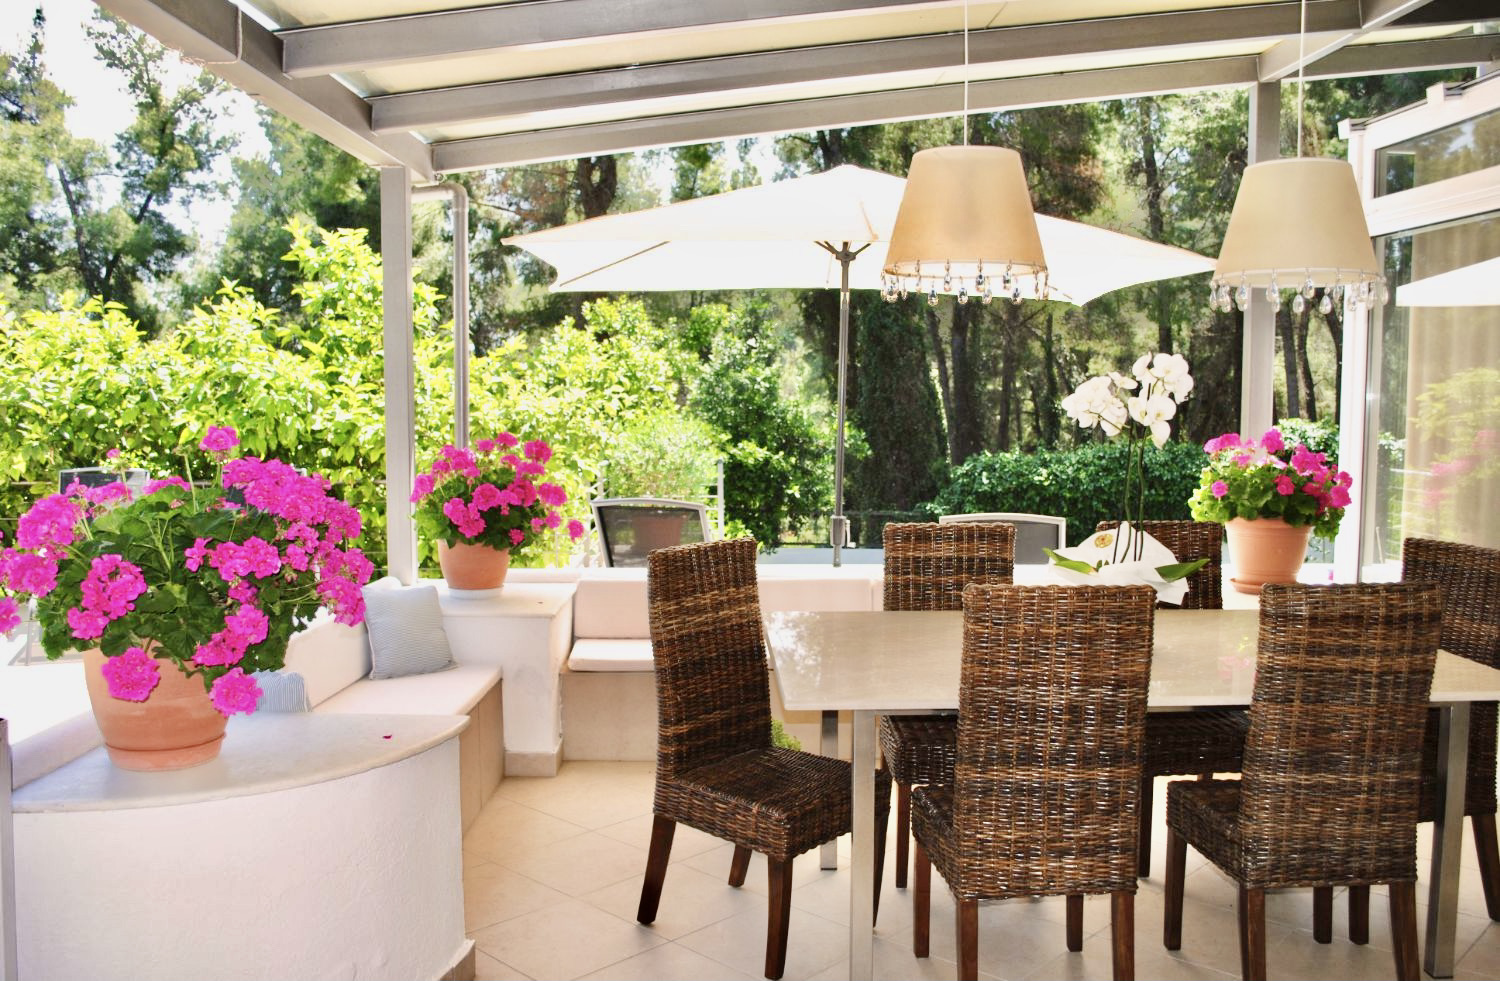 Outdoors dining area